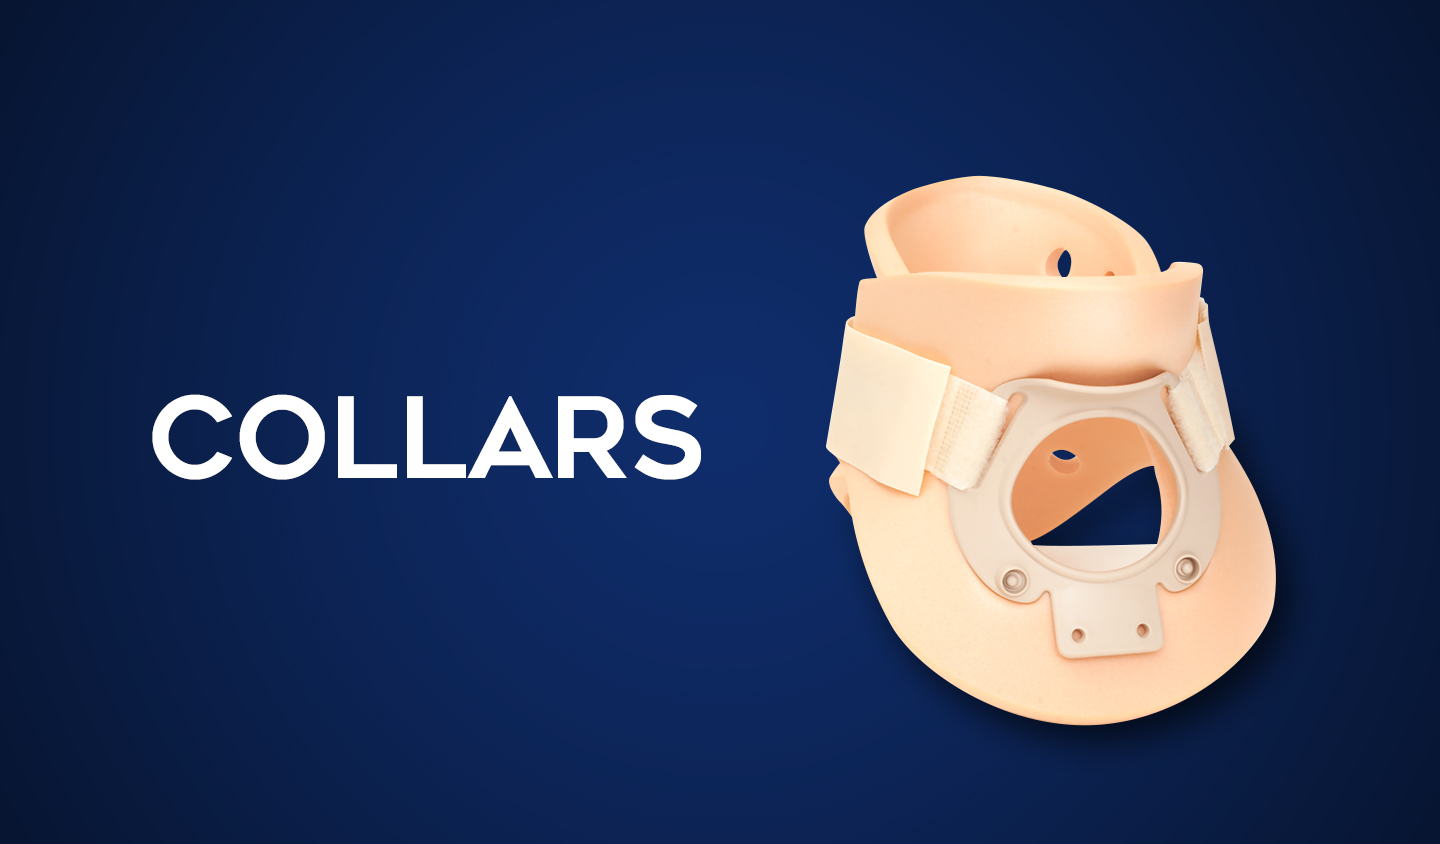 collars medical product